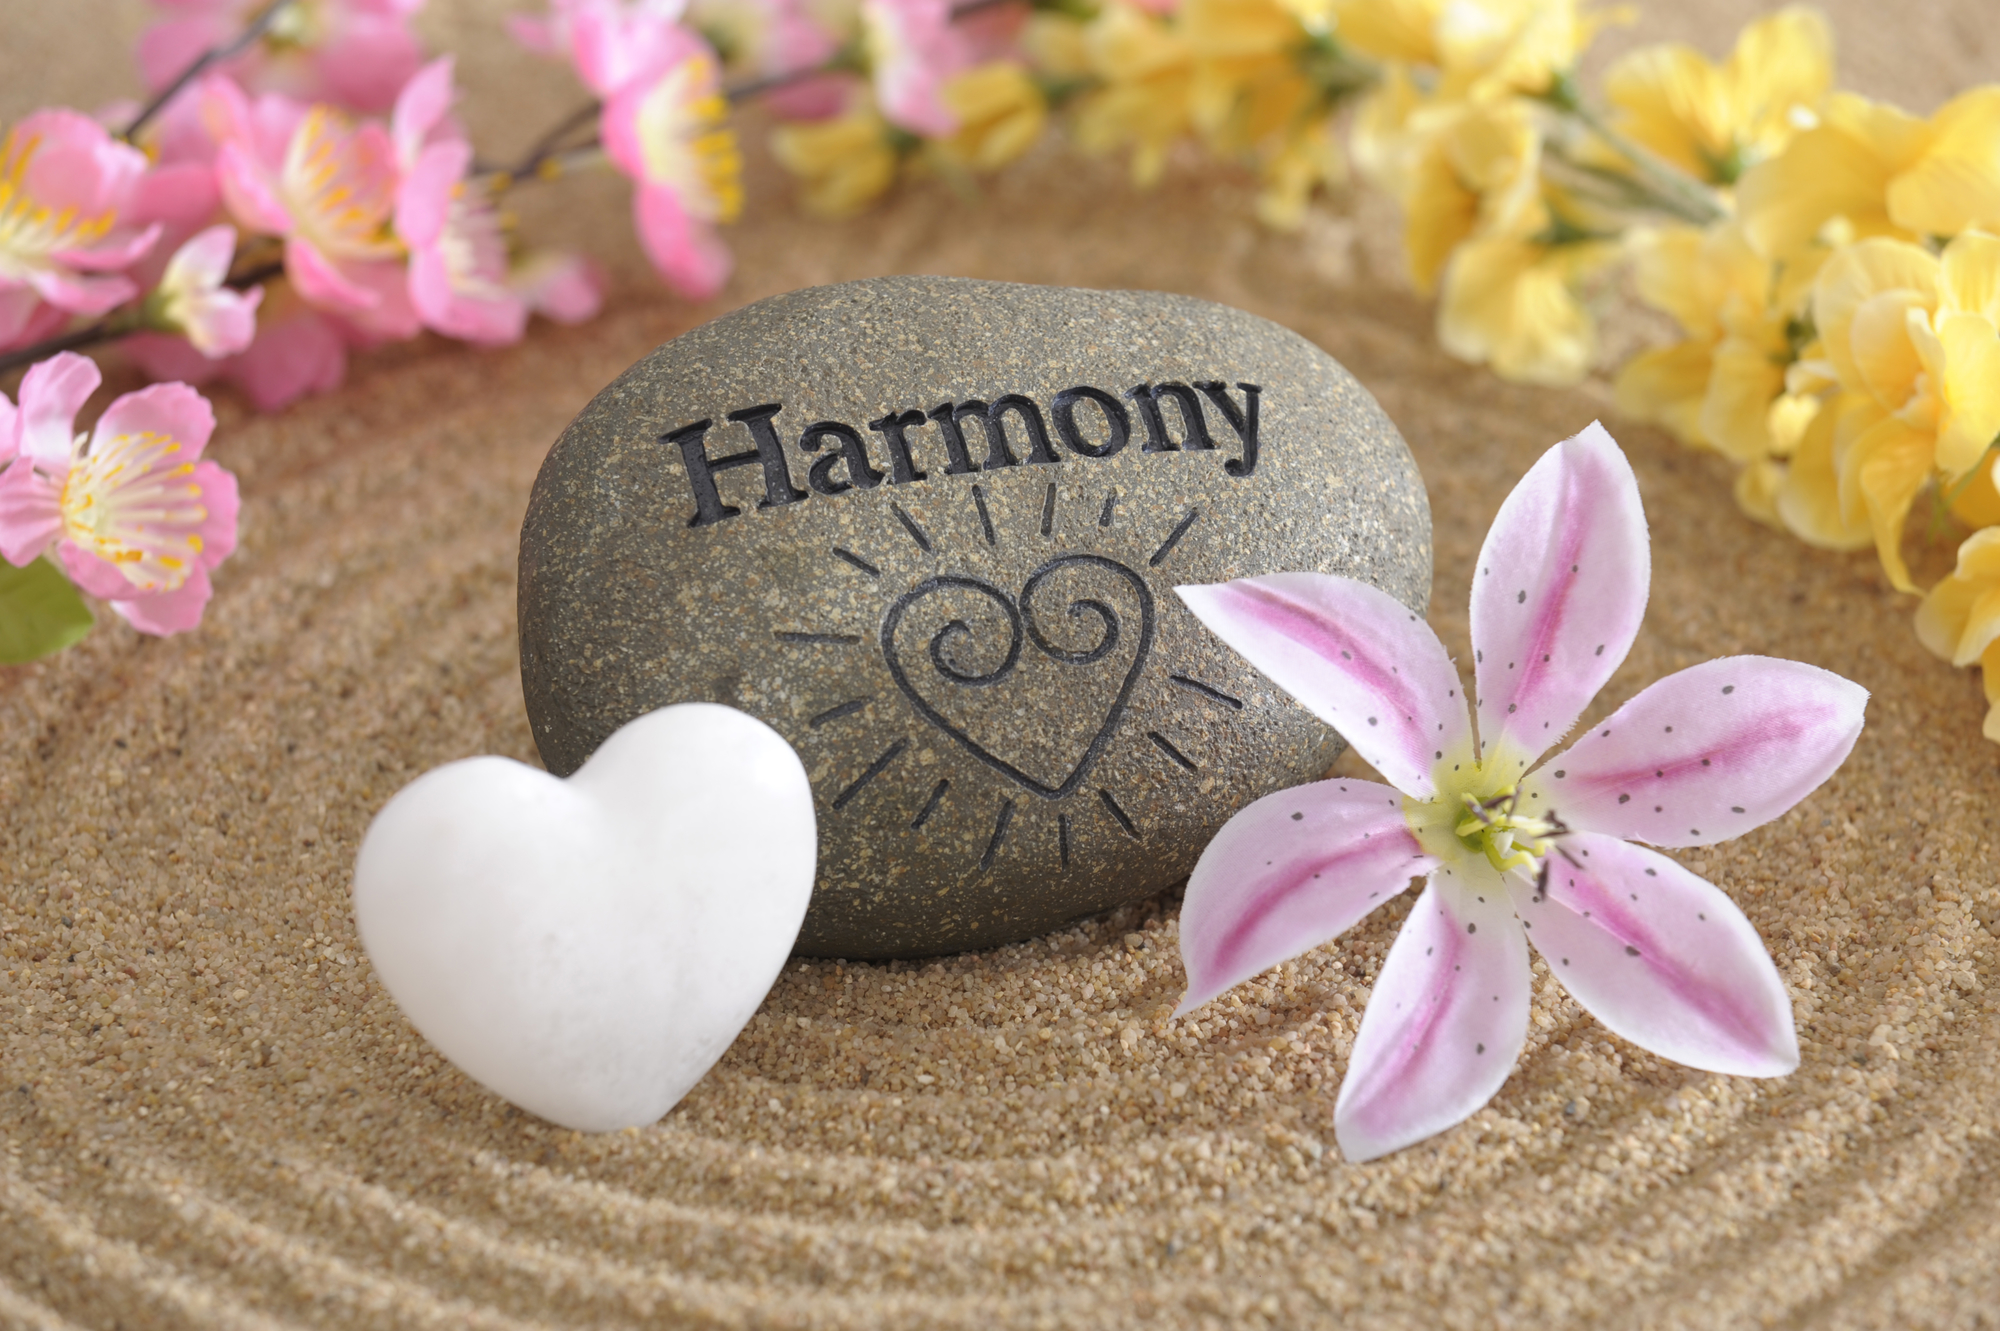 Free photo: Harmony - Artistic, Beautiful, Blooming - Free ...